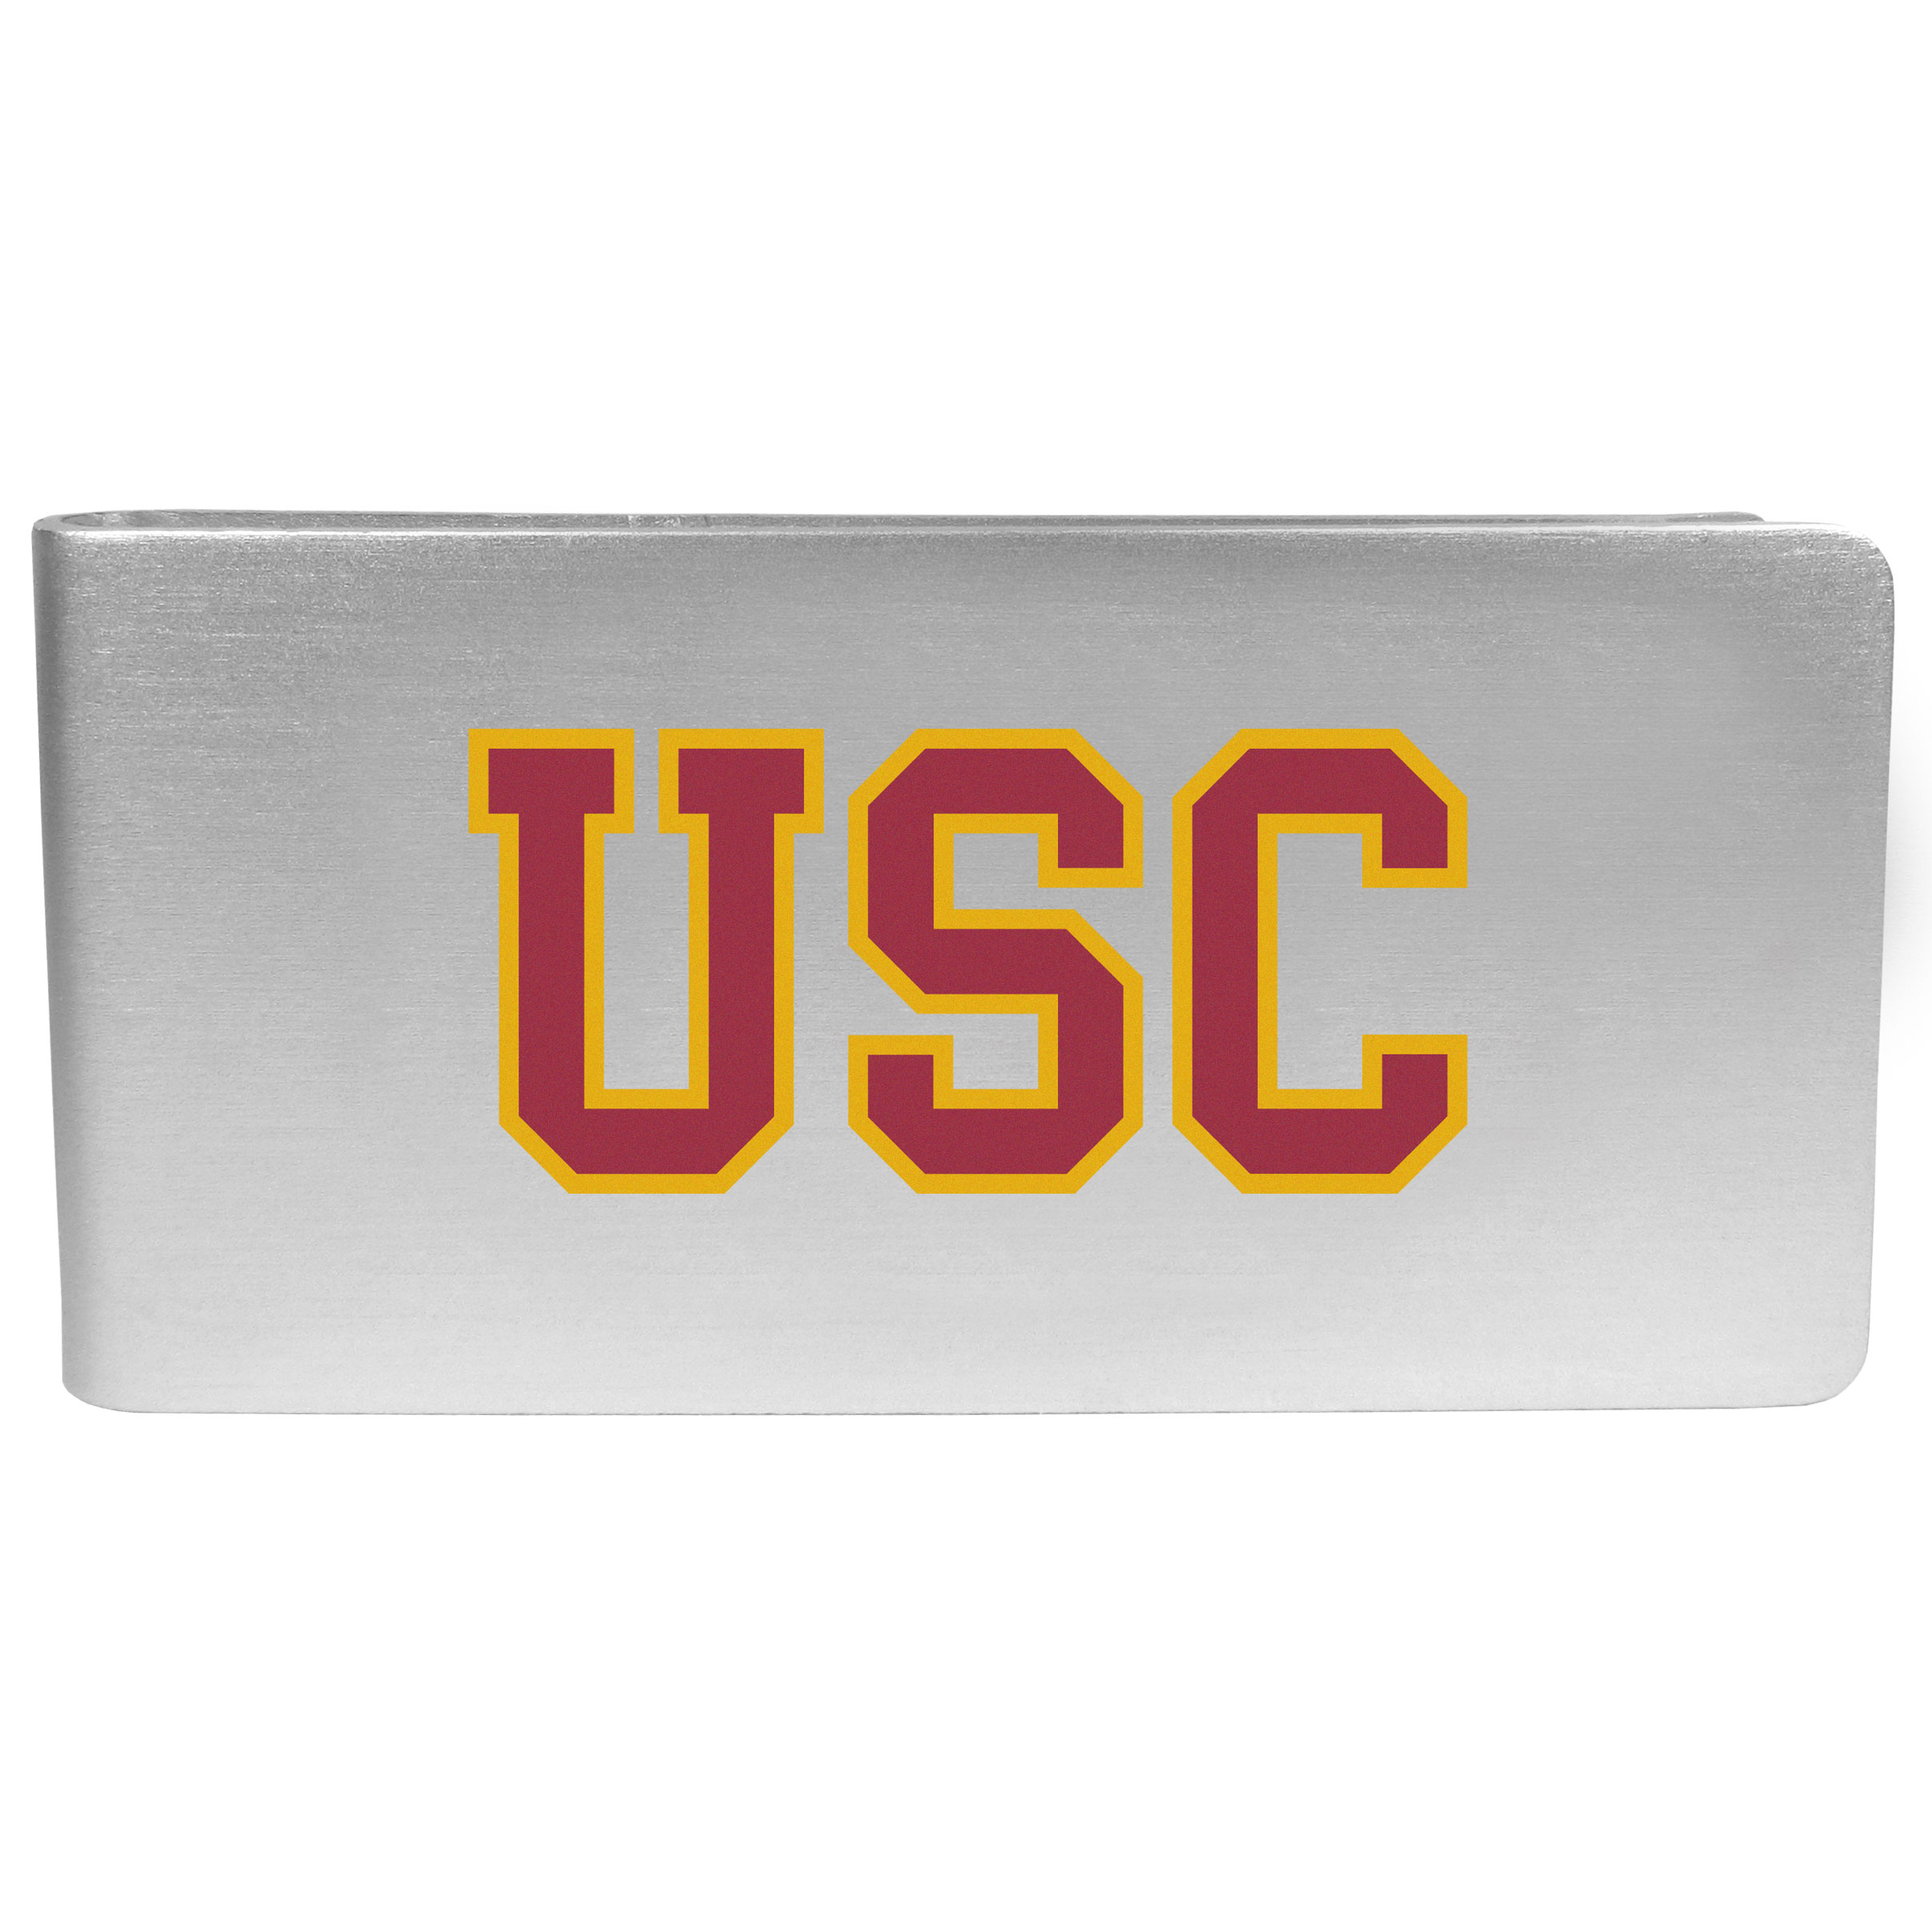 USC Trojans Logo Money Clip - Our brushed metal money clip has classic style and functionality. The attractive clip features the USC Trojans logo expertly printed on front.